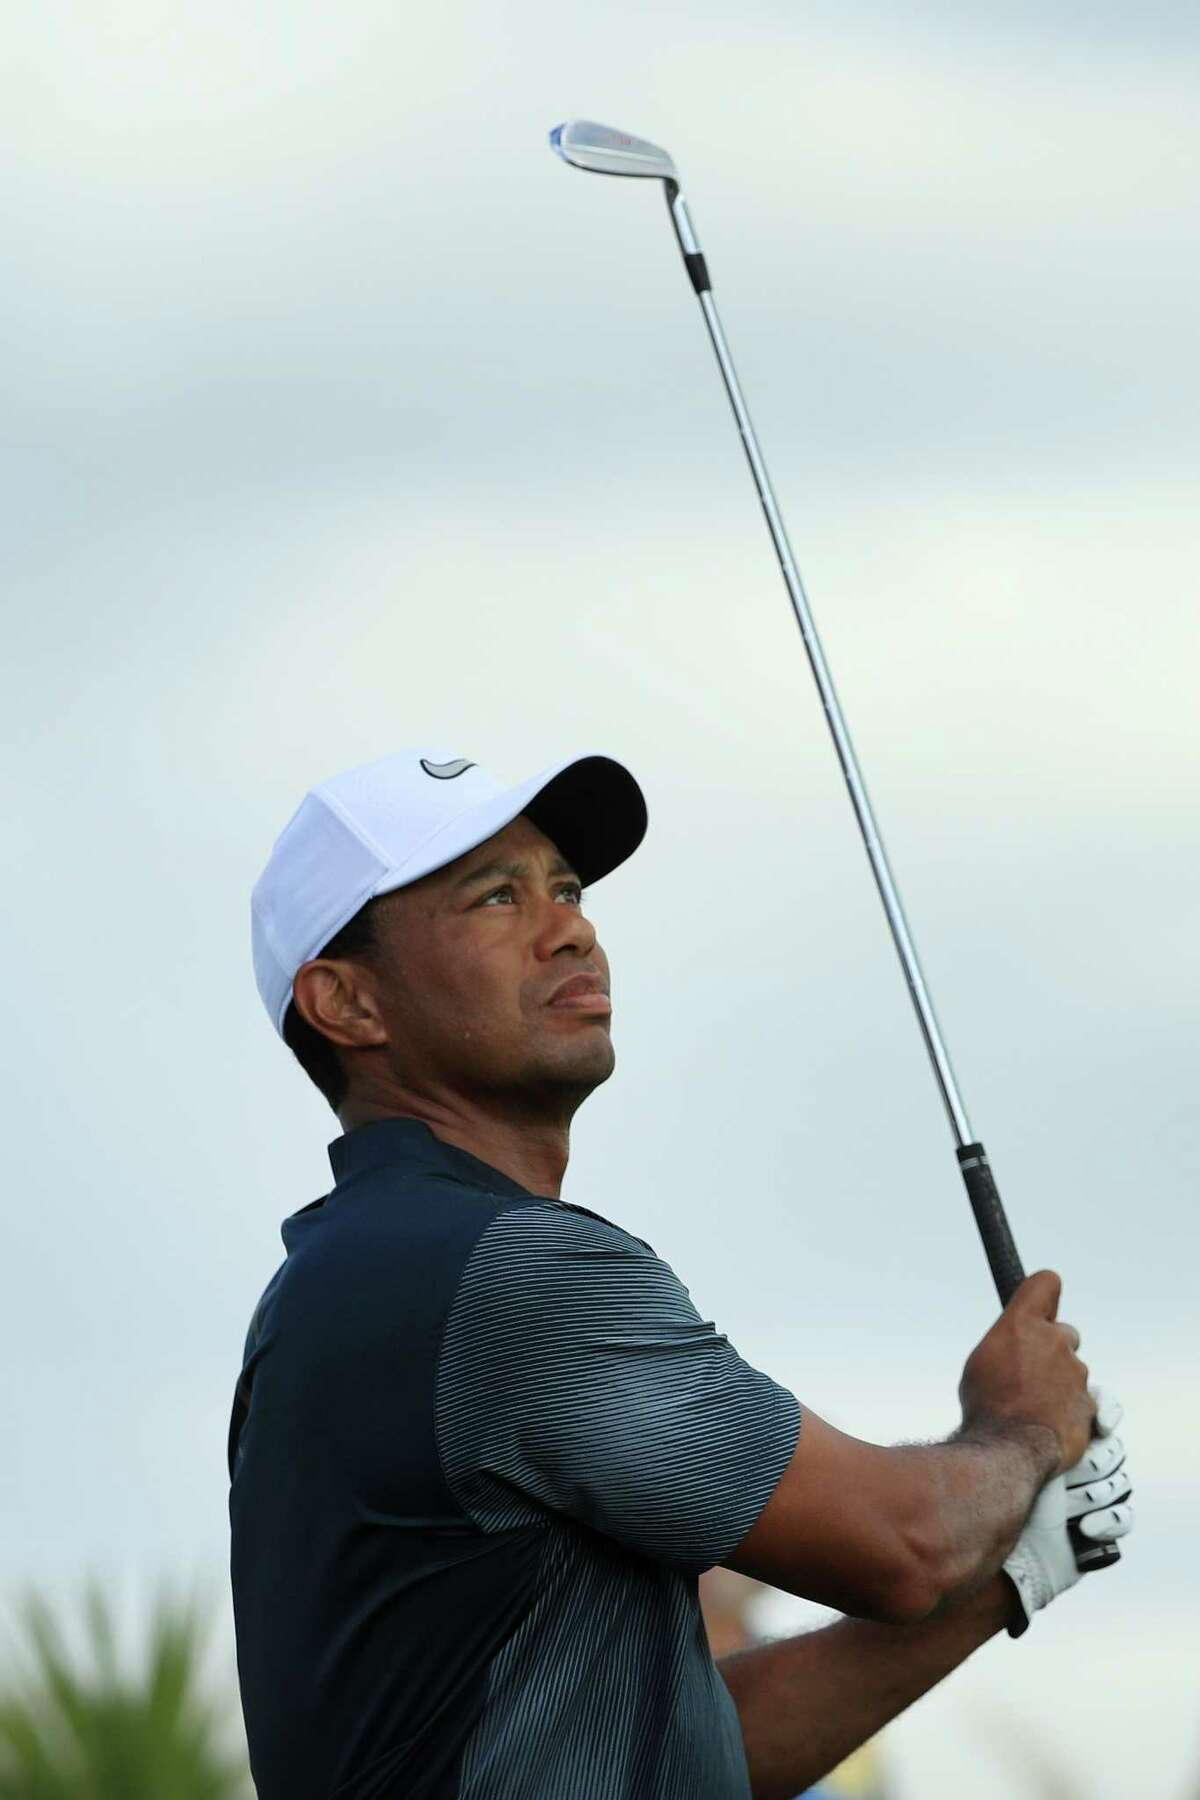 NASSAU, BAHAMAS - DECEMBER 02: Tiger Woods of the United States plays his shot from the second tee during the third round of the Hero World Challenge at Albany, Bahamas on December 2, 2017 in Nassau, Bahamas. (Photo by Mike Ehrmann/Getty Images) ORG XMIT: 775055560